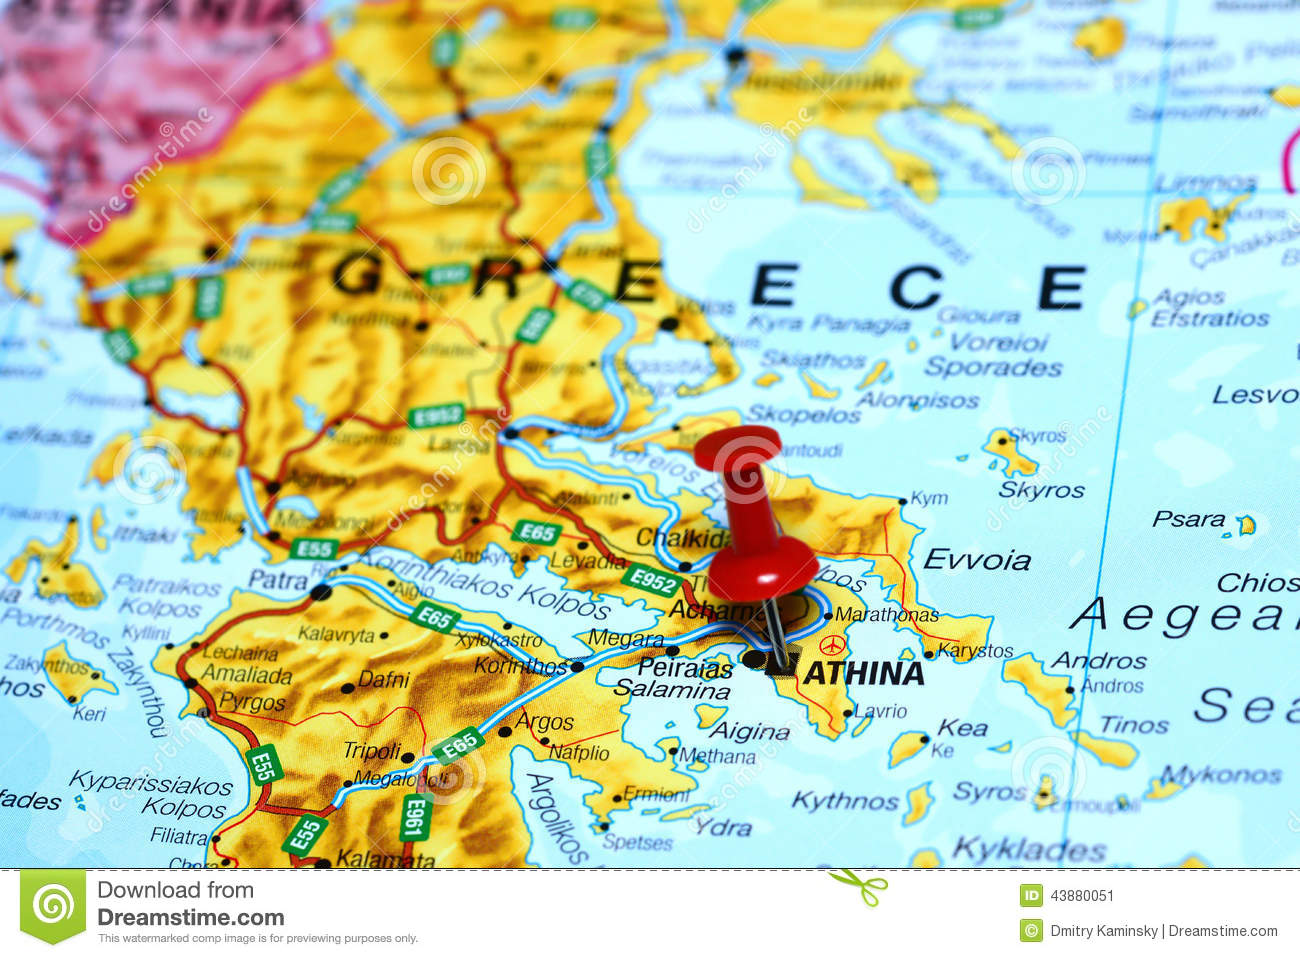 Athens Pinned On A Map Of Europe Photo Image 43880029 – A Map of Europe